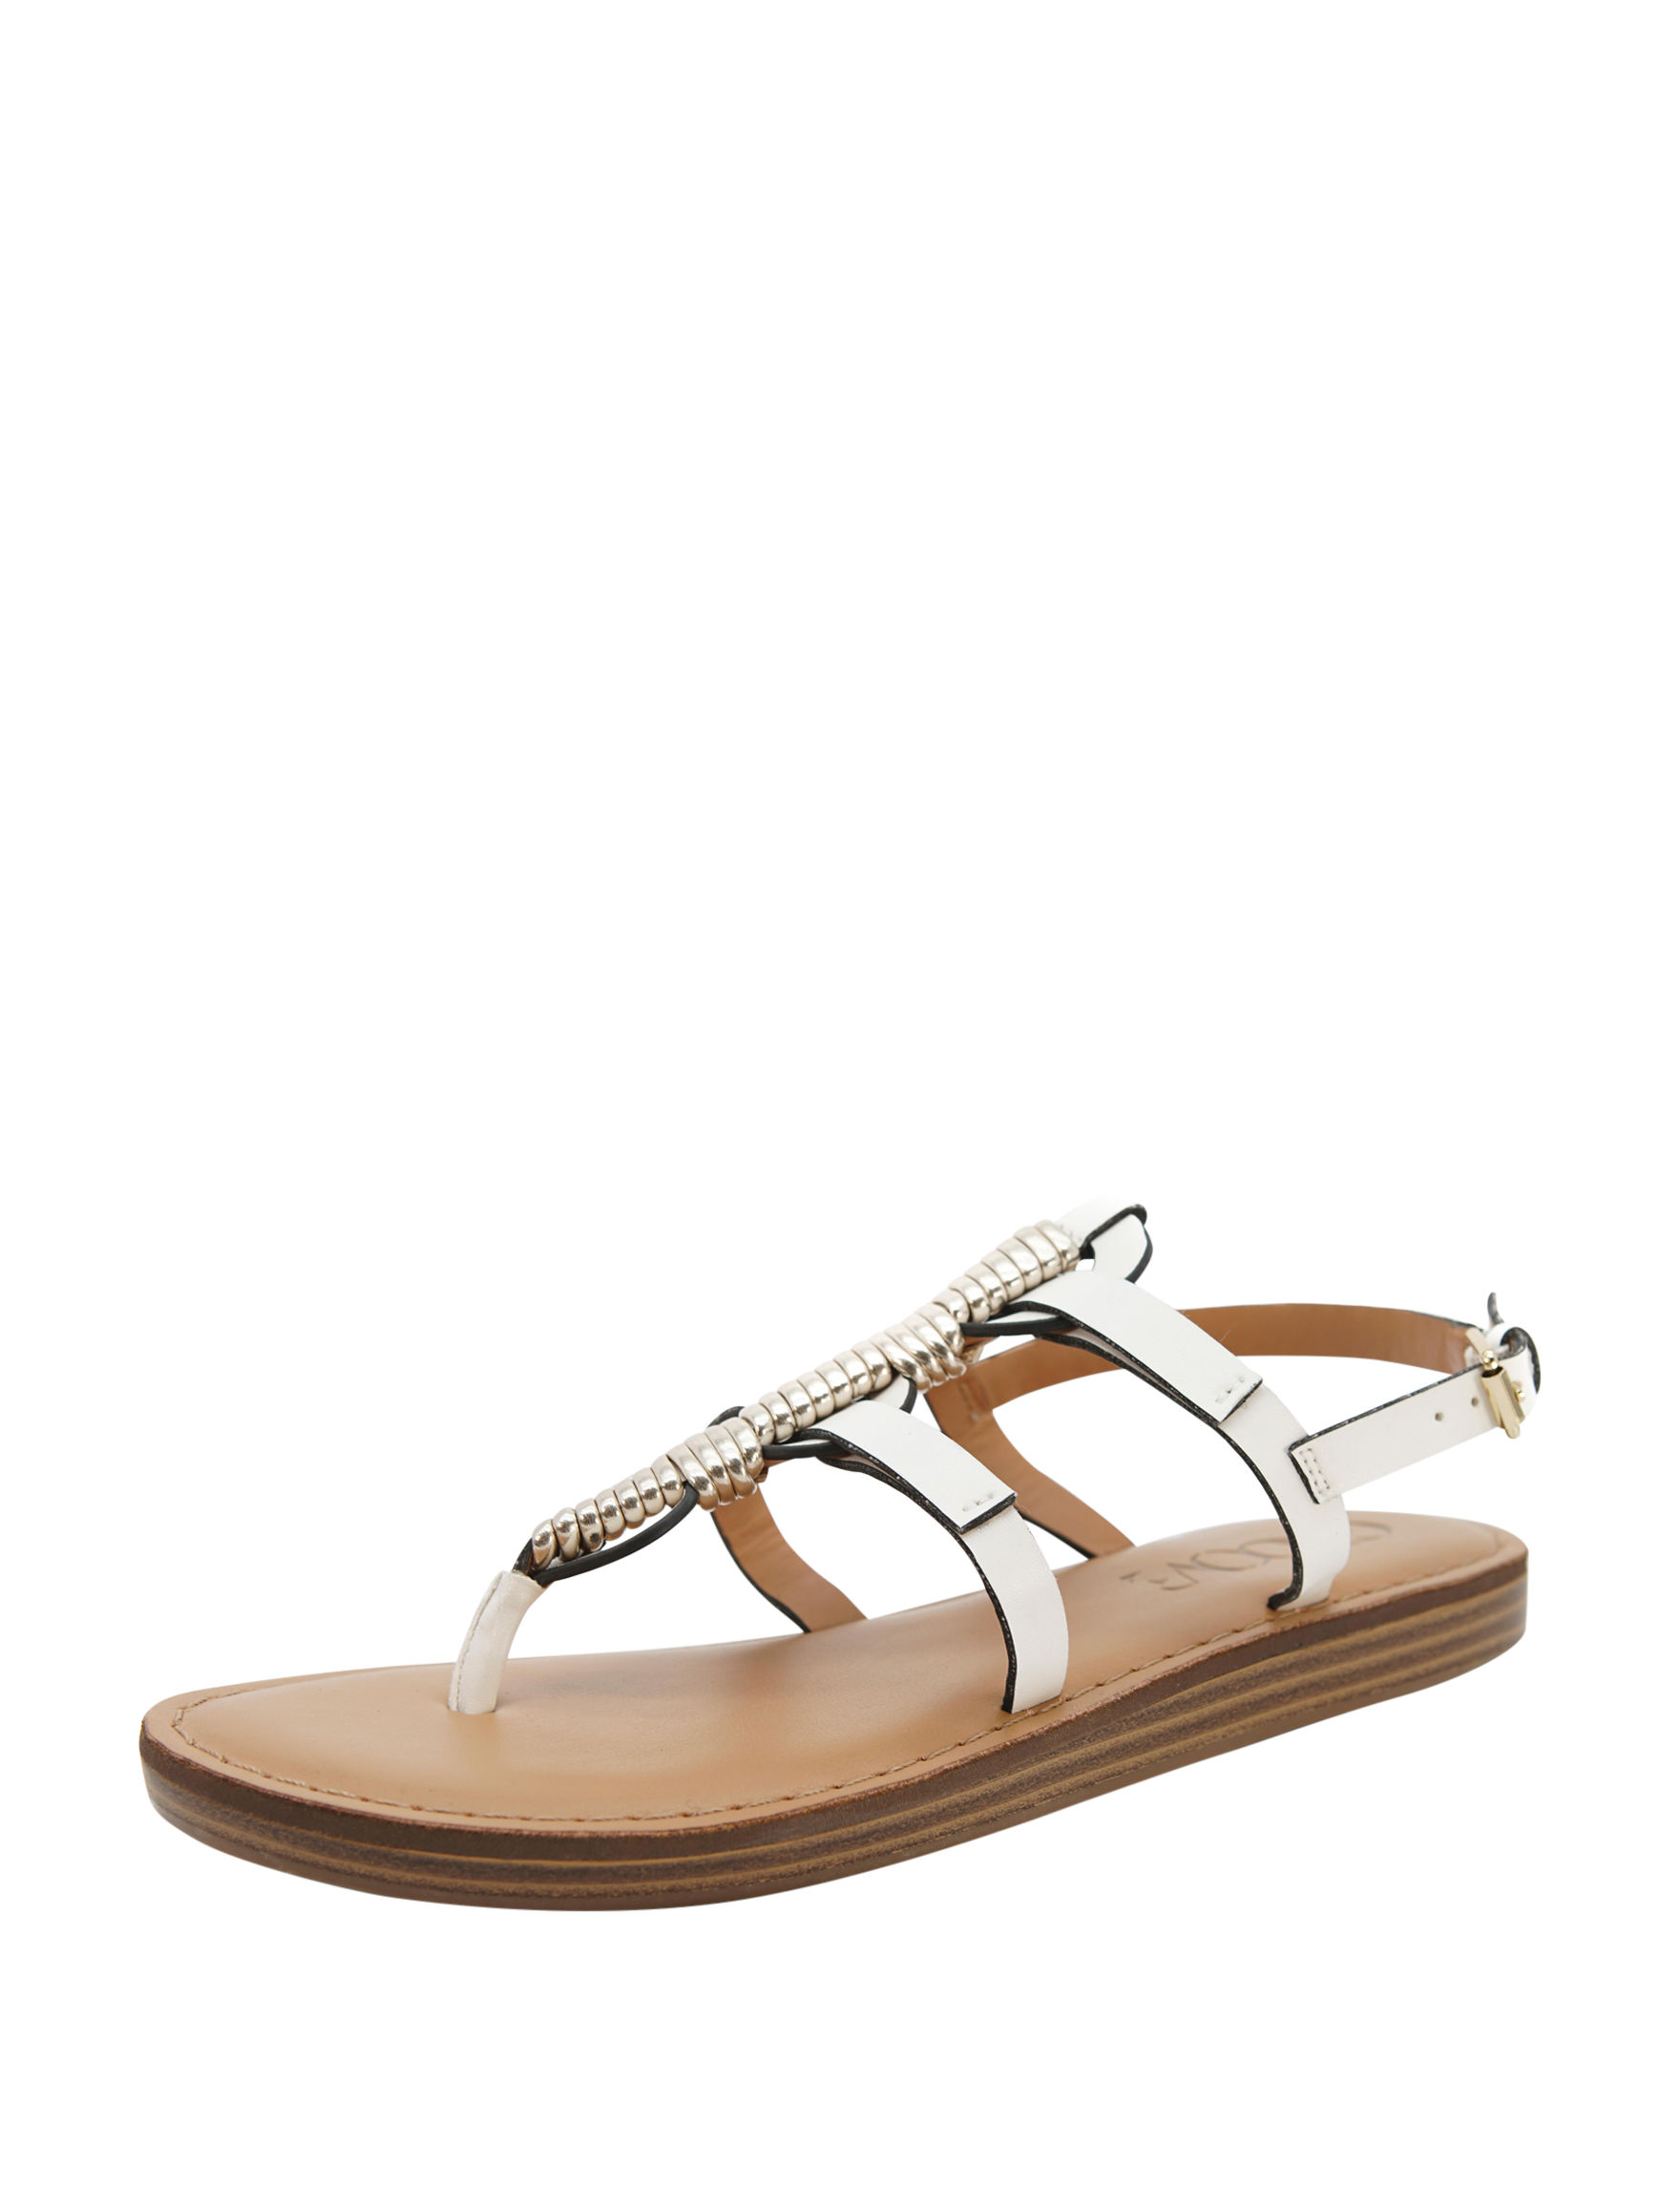 Groove Footwear white/gold Espadrille